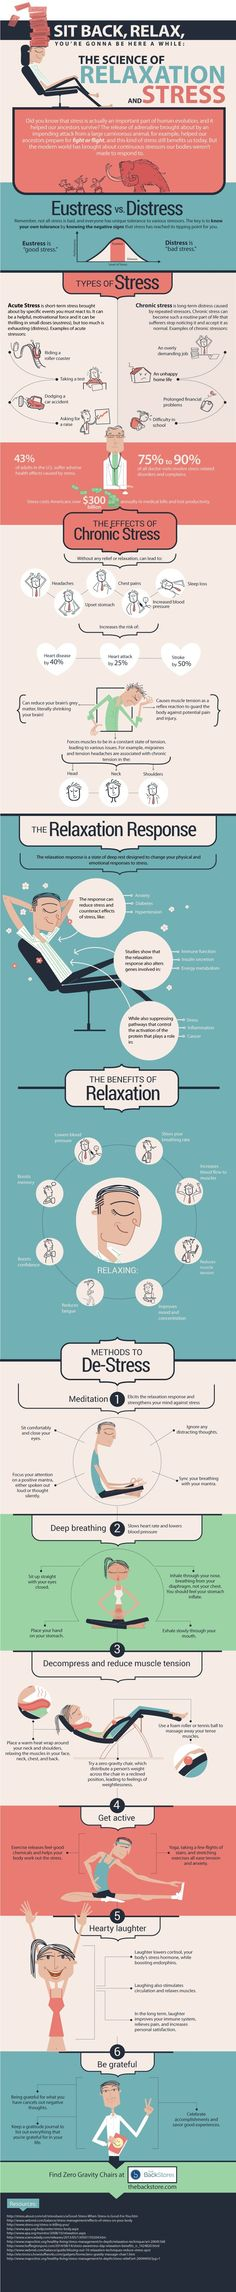 Tweet Tweet We all have to deal with stressful situations. Not all stress is bad for you. This infographic from the Back Store covers various types of stress and how you can de-stress: